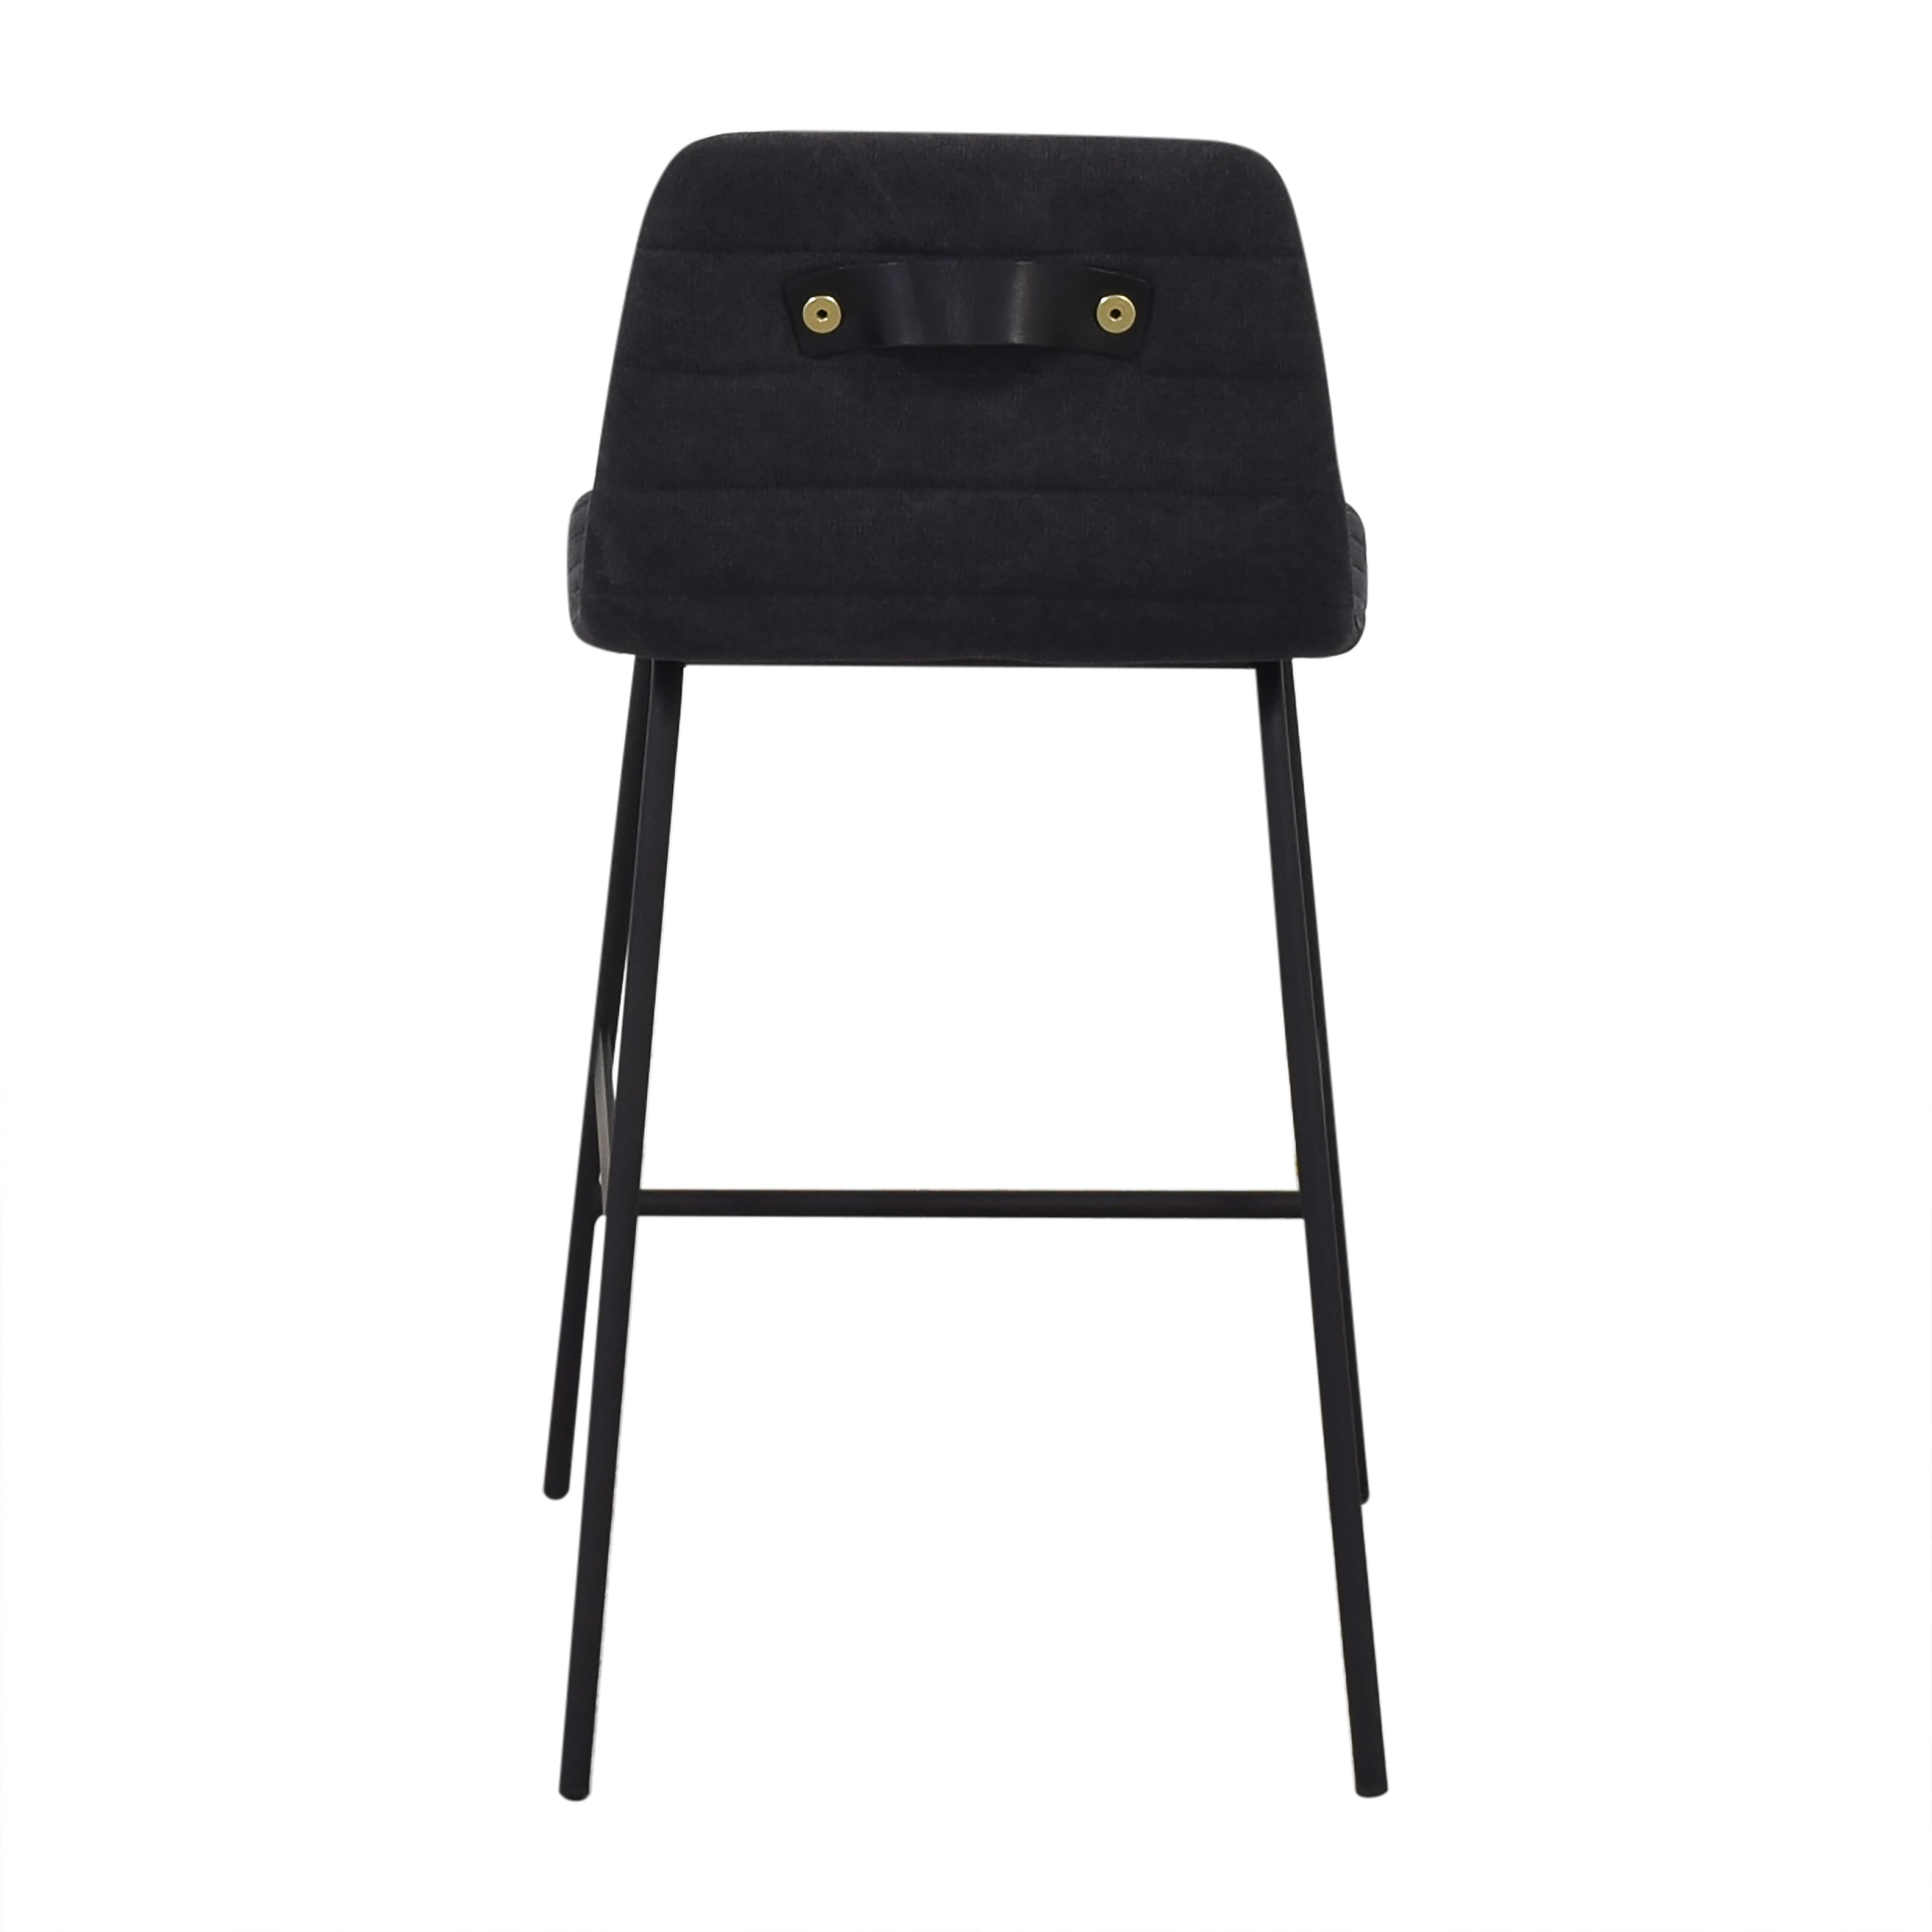 Gus Modern Gus Modern Lecture Stool for sale